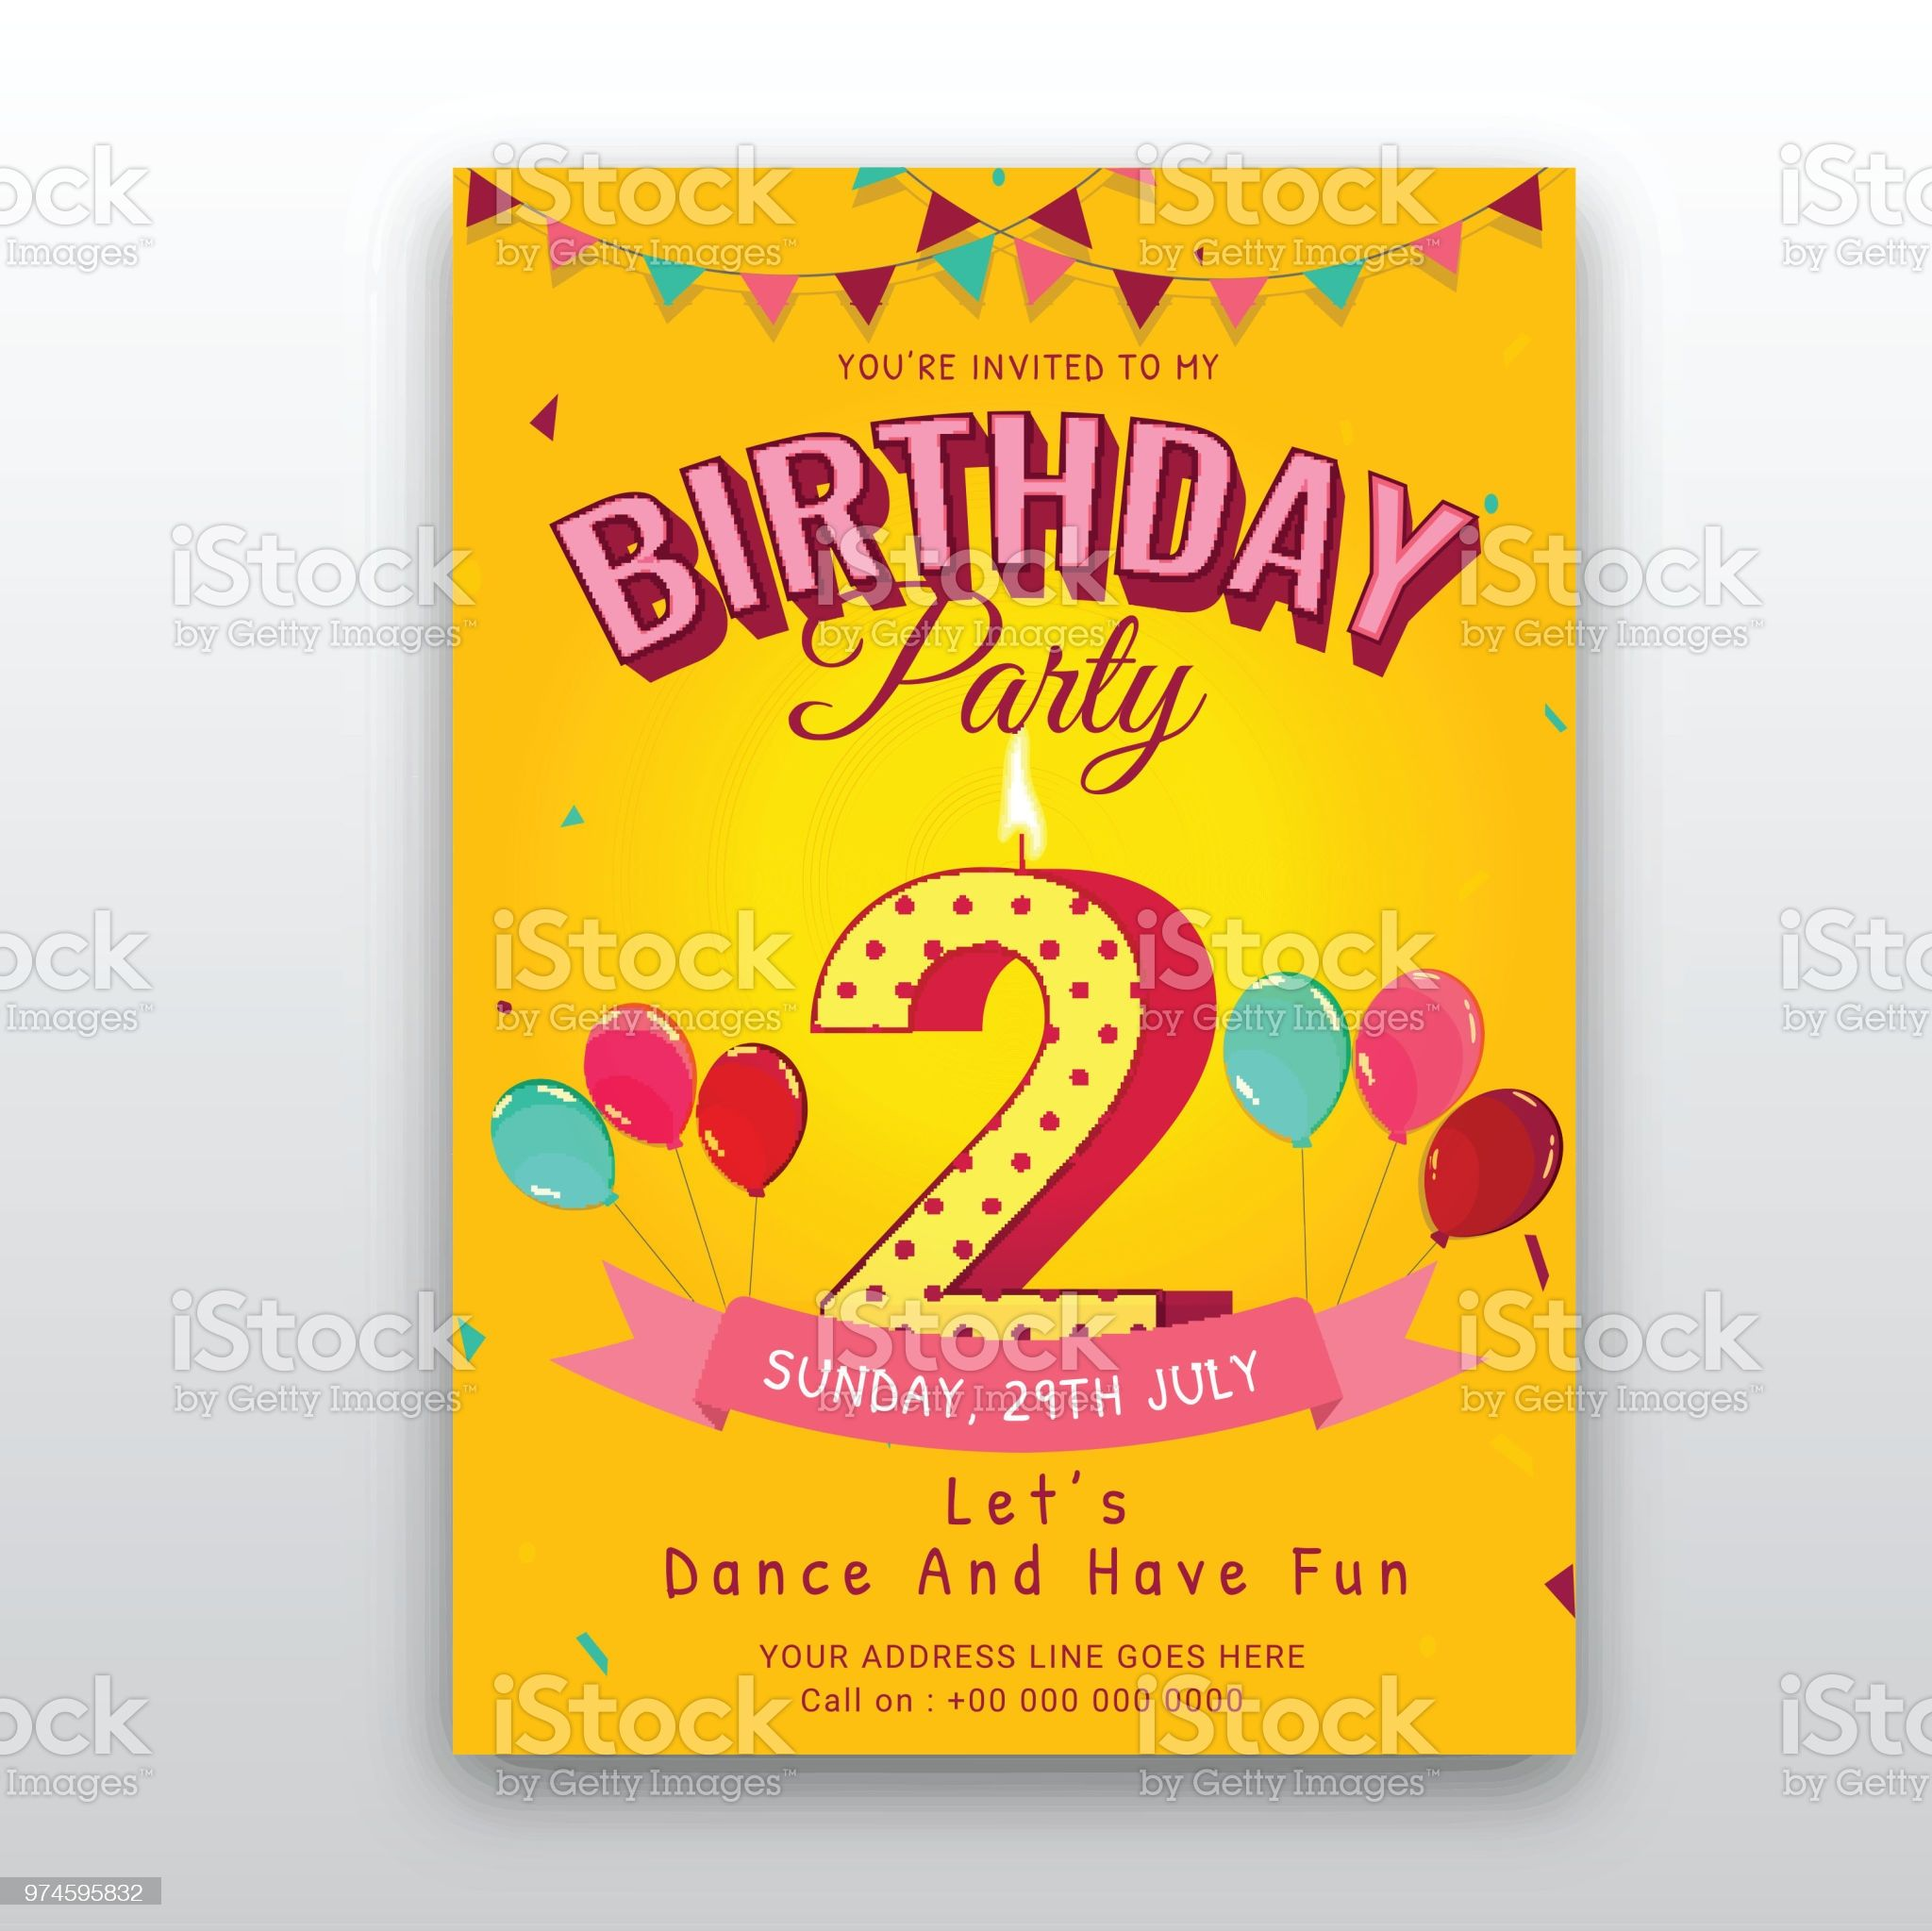 Birthday Card Invitation Template With Number 2 2nd Birthday Birthday Cards To Print Birthday Cards Cards